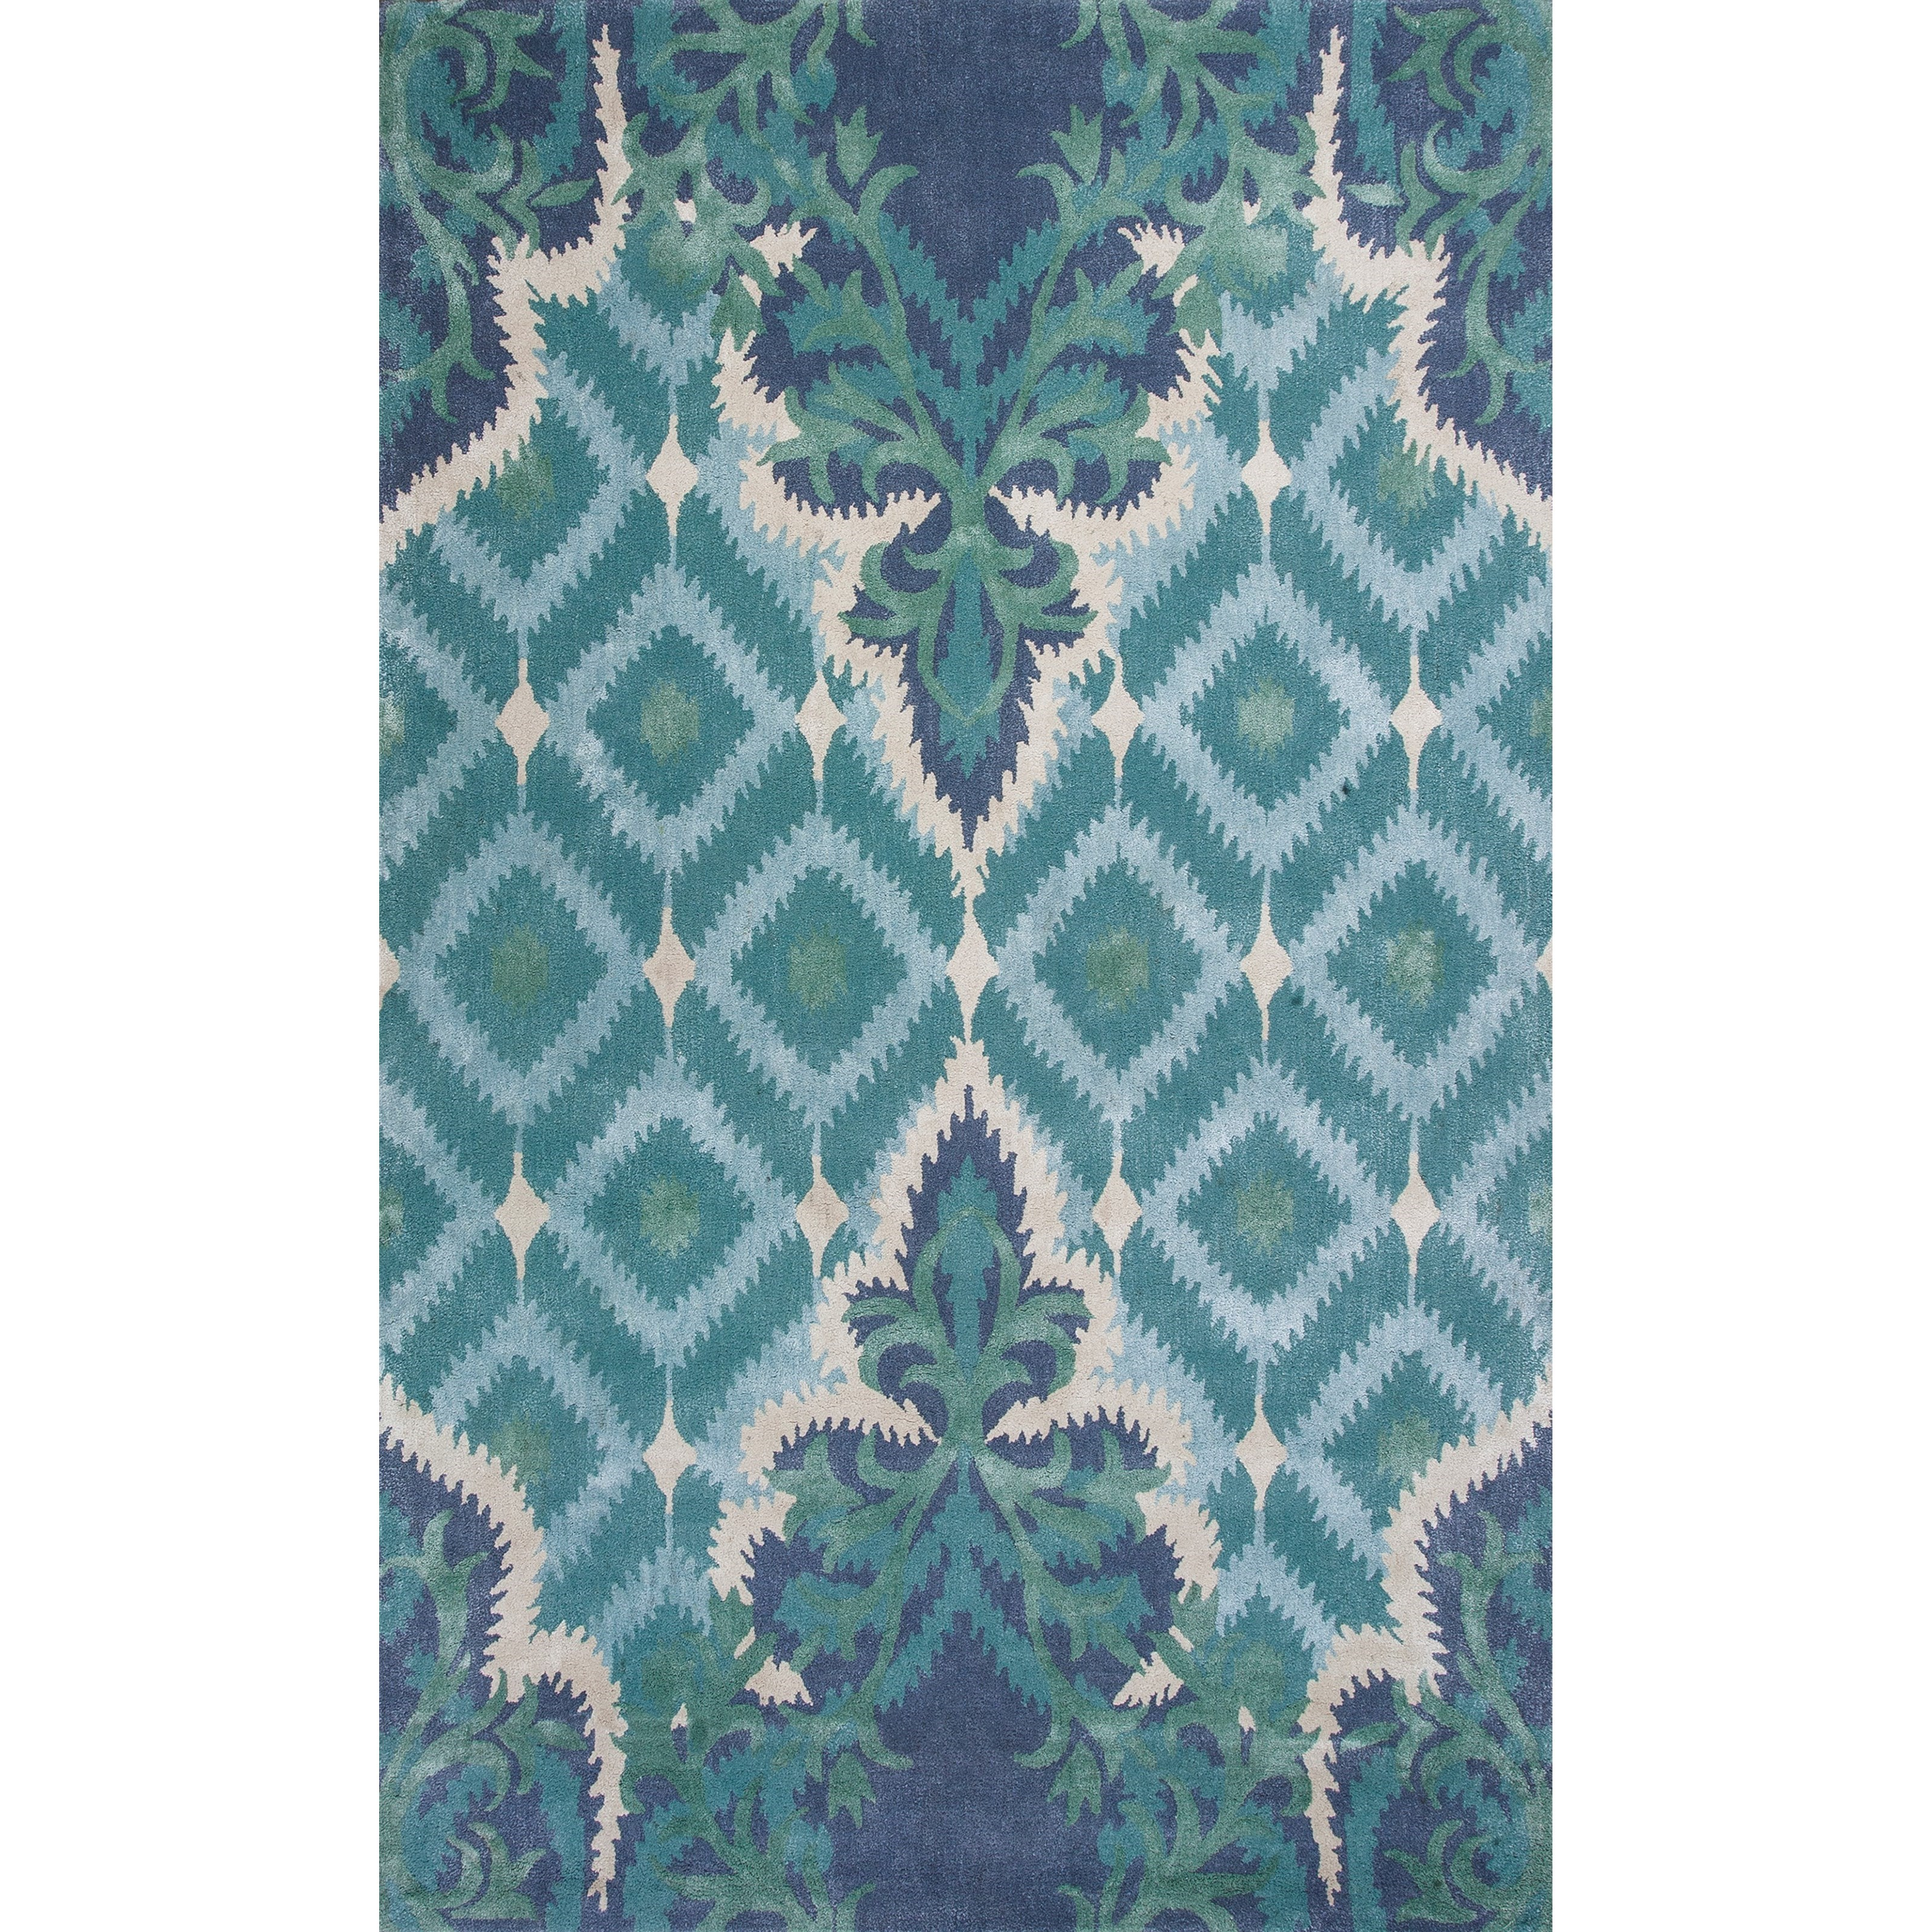 5' X 8' Blue/Green Opulence Area Rug